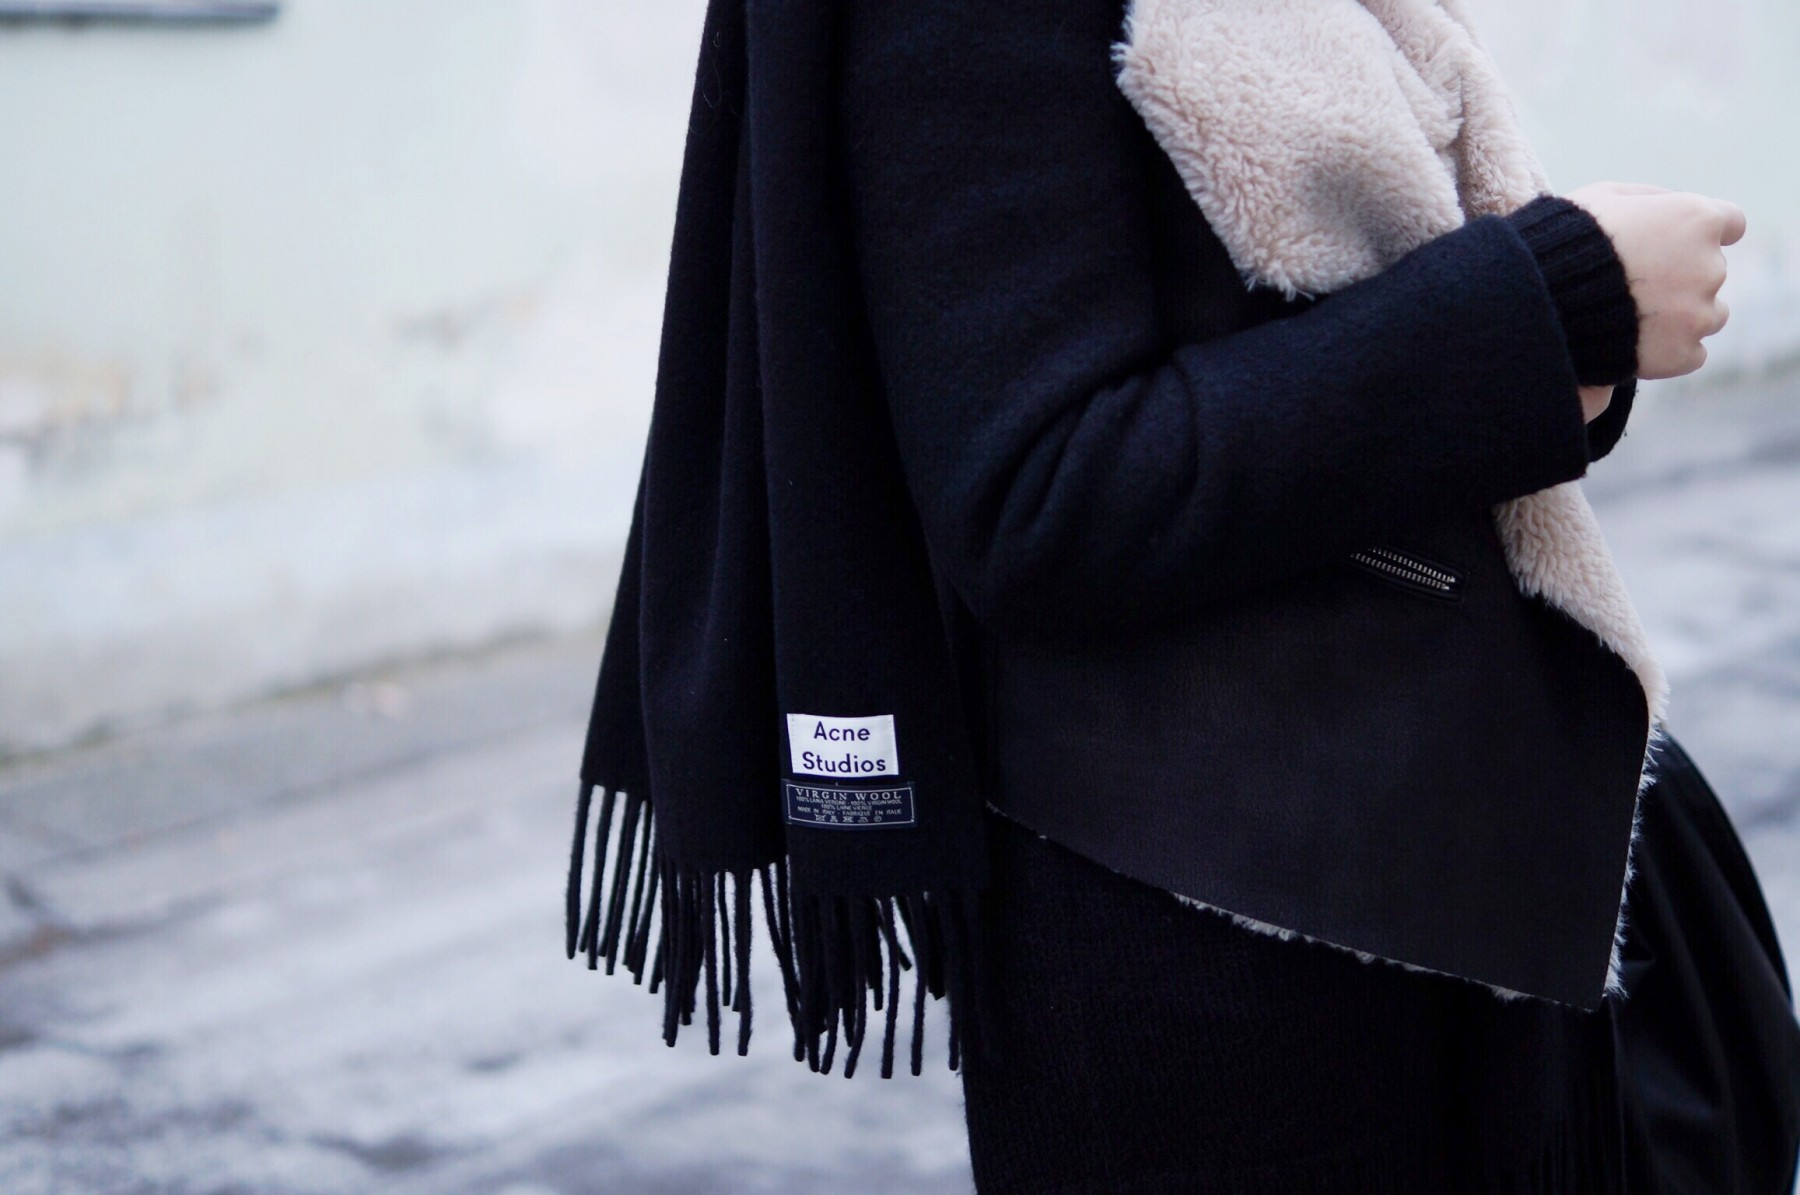 acne_studios_scarf_lambskin_jacket_winter_outfit11